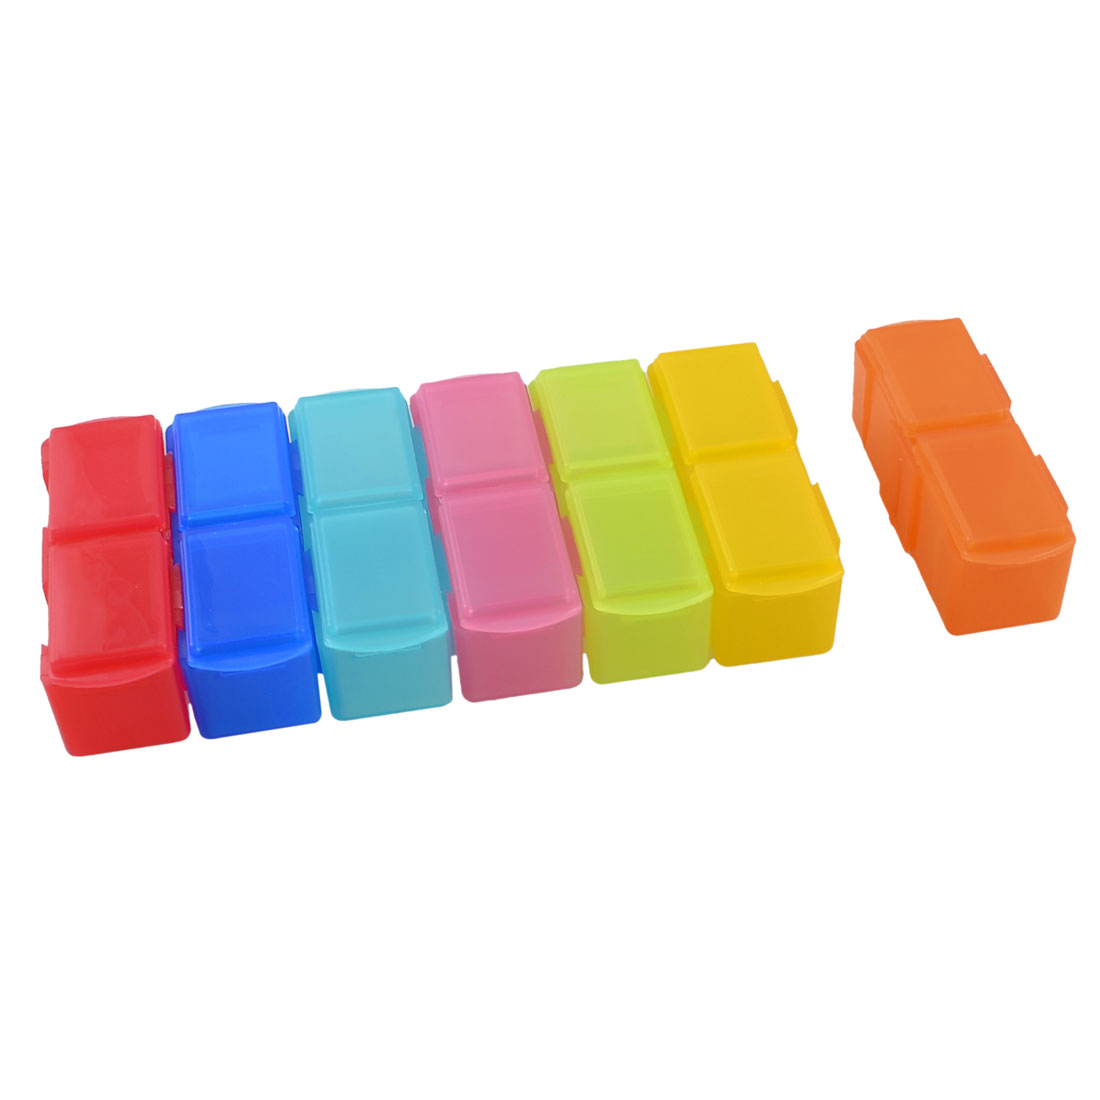 Assorted Colors Plastic Detachable 14 Mini Boxes Linked Storage Case Box Holder